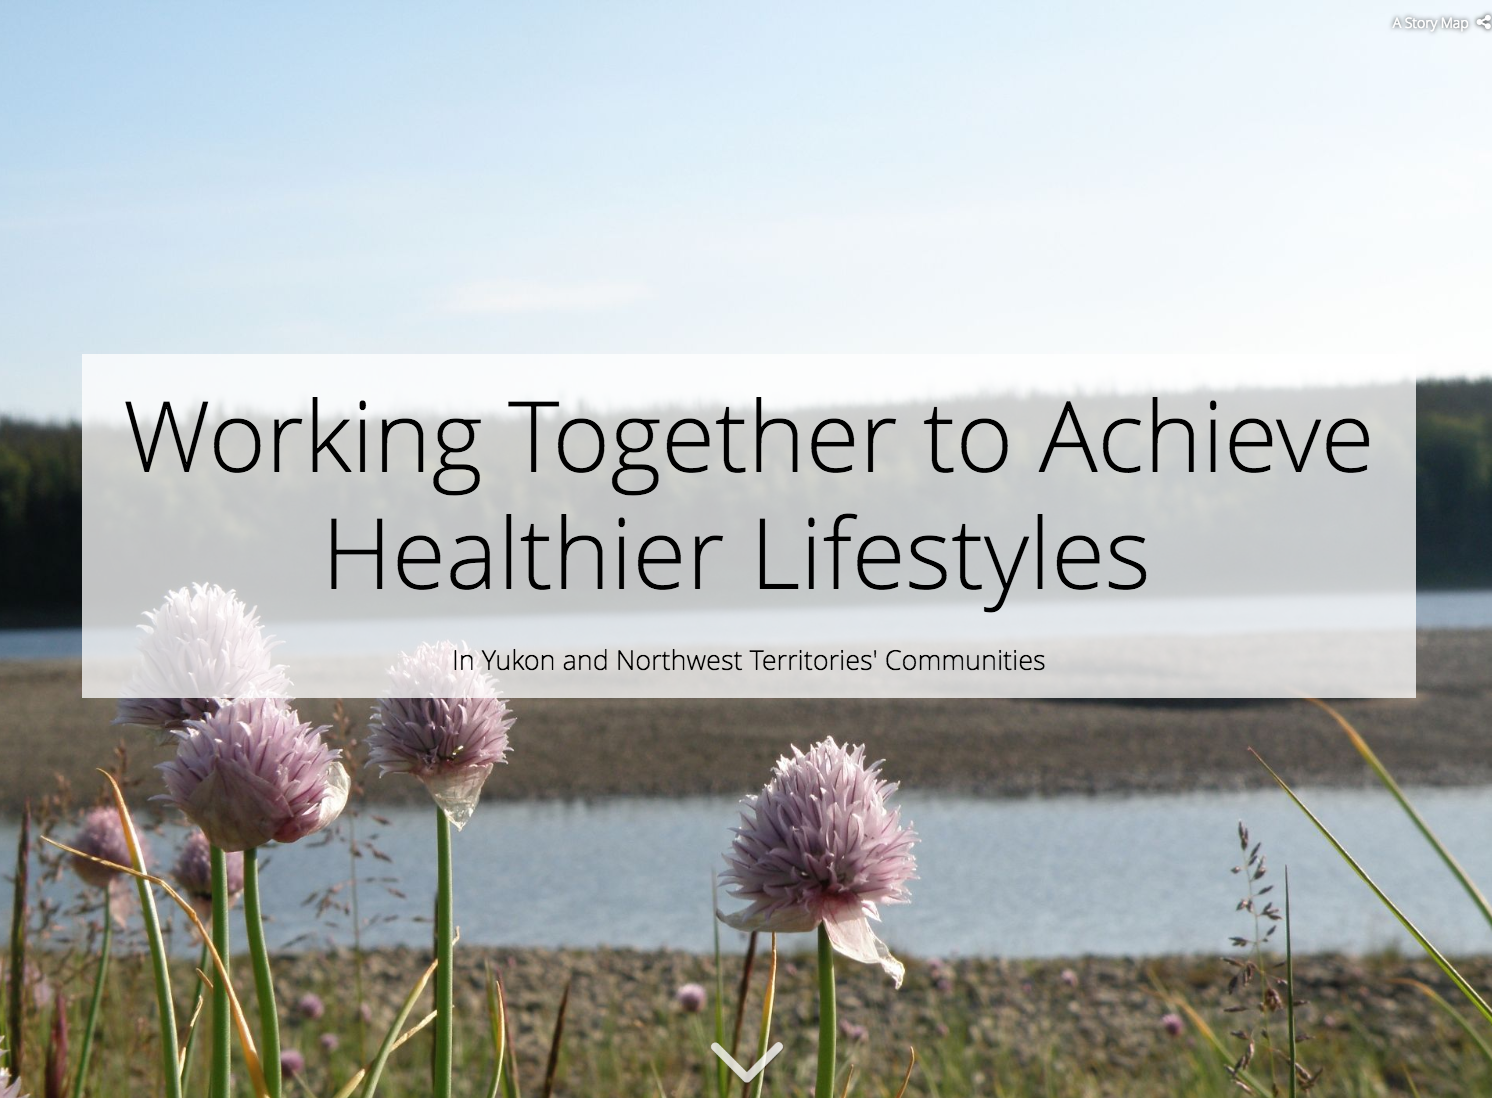 Read the story of the Working Together Project, which celebrates partnerships and using collective impact approach to advance food security and healthy lifestyles in Yukon and NWT.